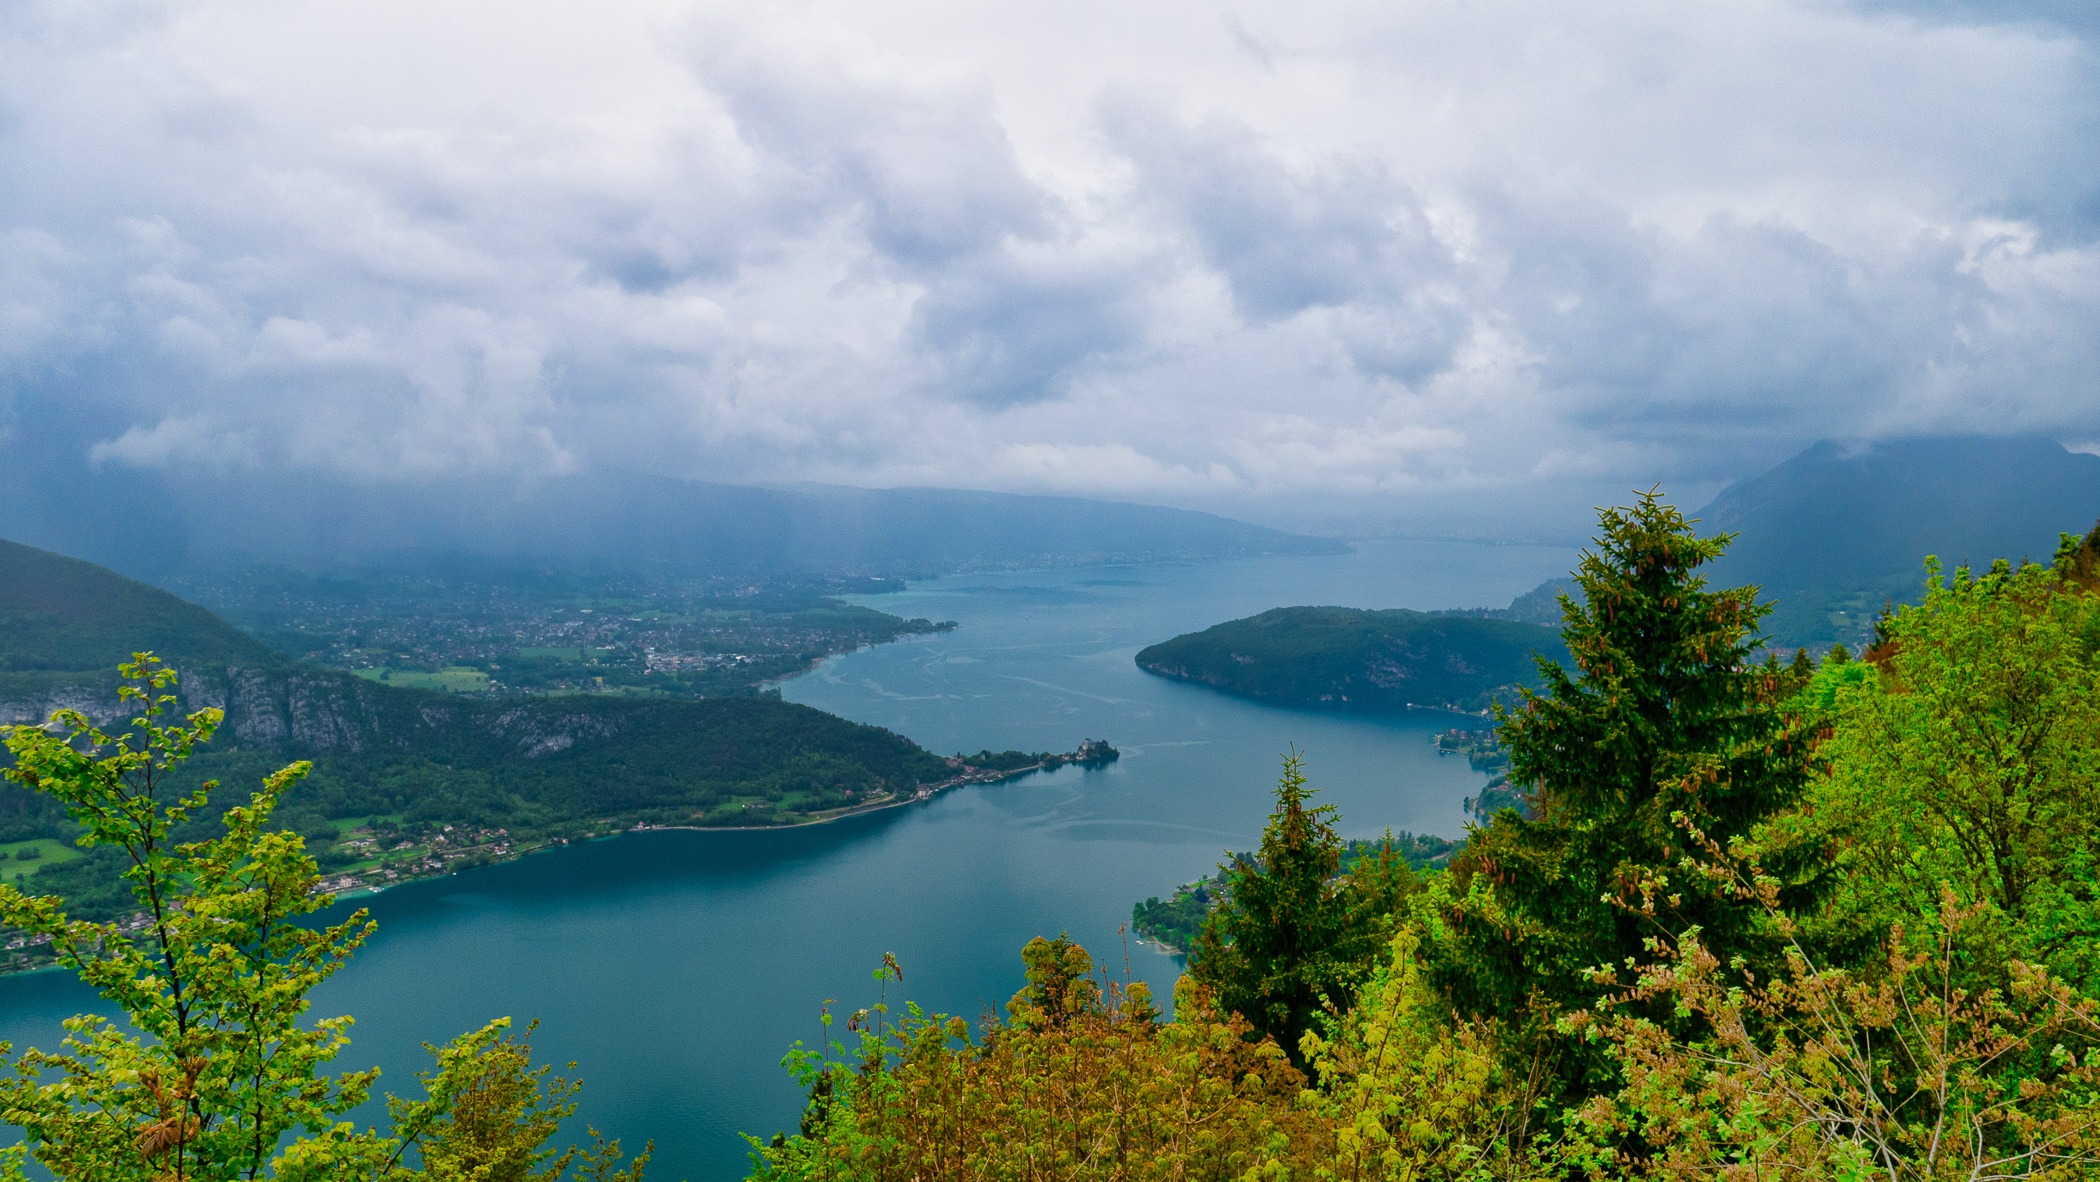 View of Lake Annecy from Col de la Forclaz